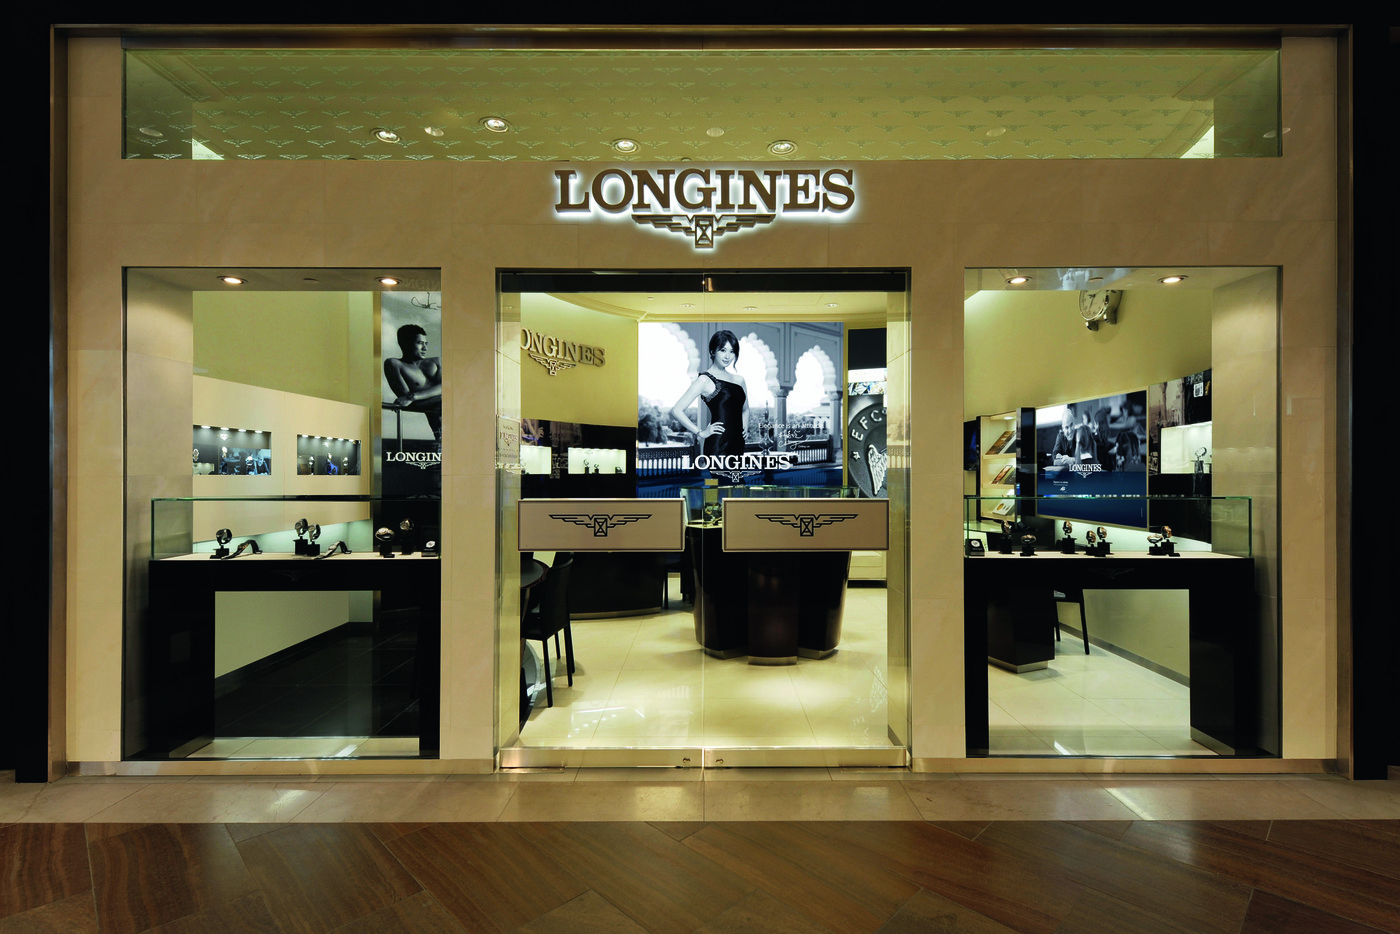 Longines Flat Racing Event: Longines Opens its 3rd Flagship Boutique and announces its new partnership with the Singapore Turf Club 8